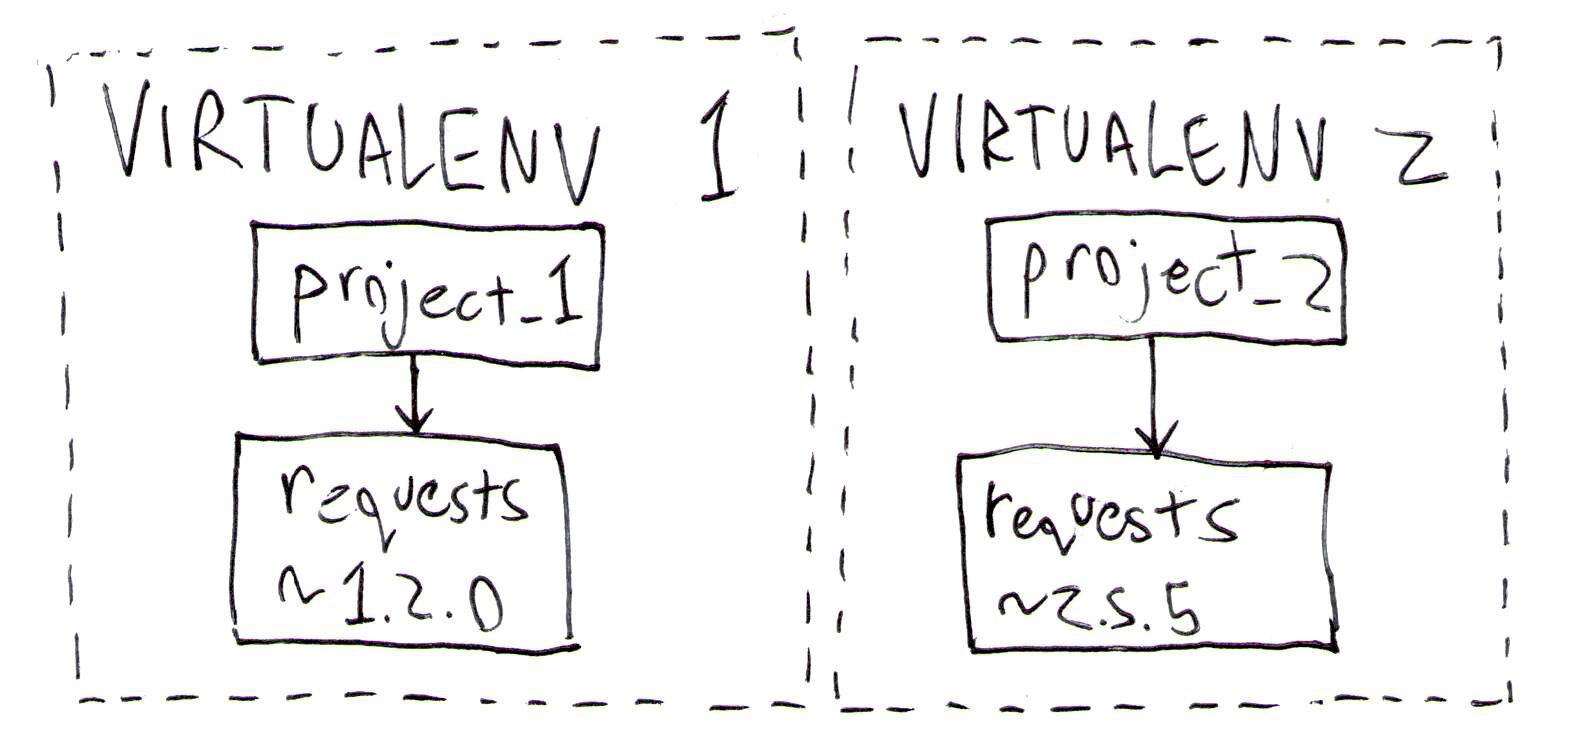 Now you can install a different version of requests into each virtualenv, eliminating the conflict.